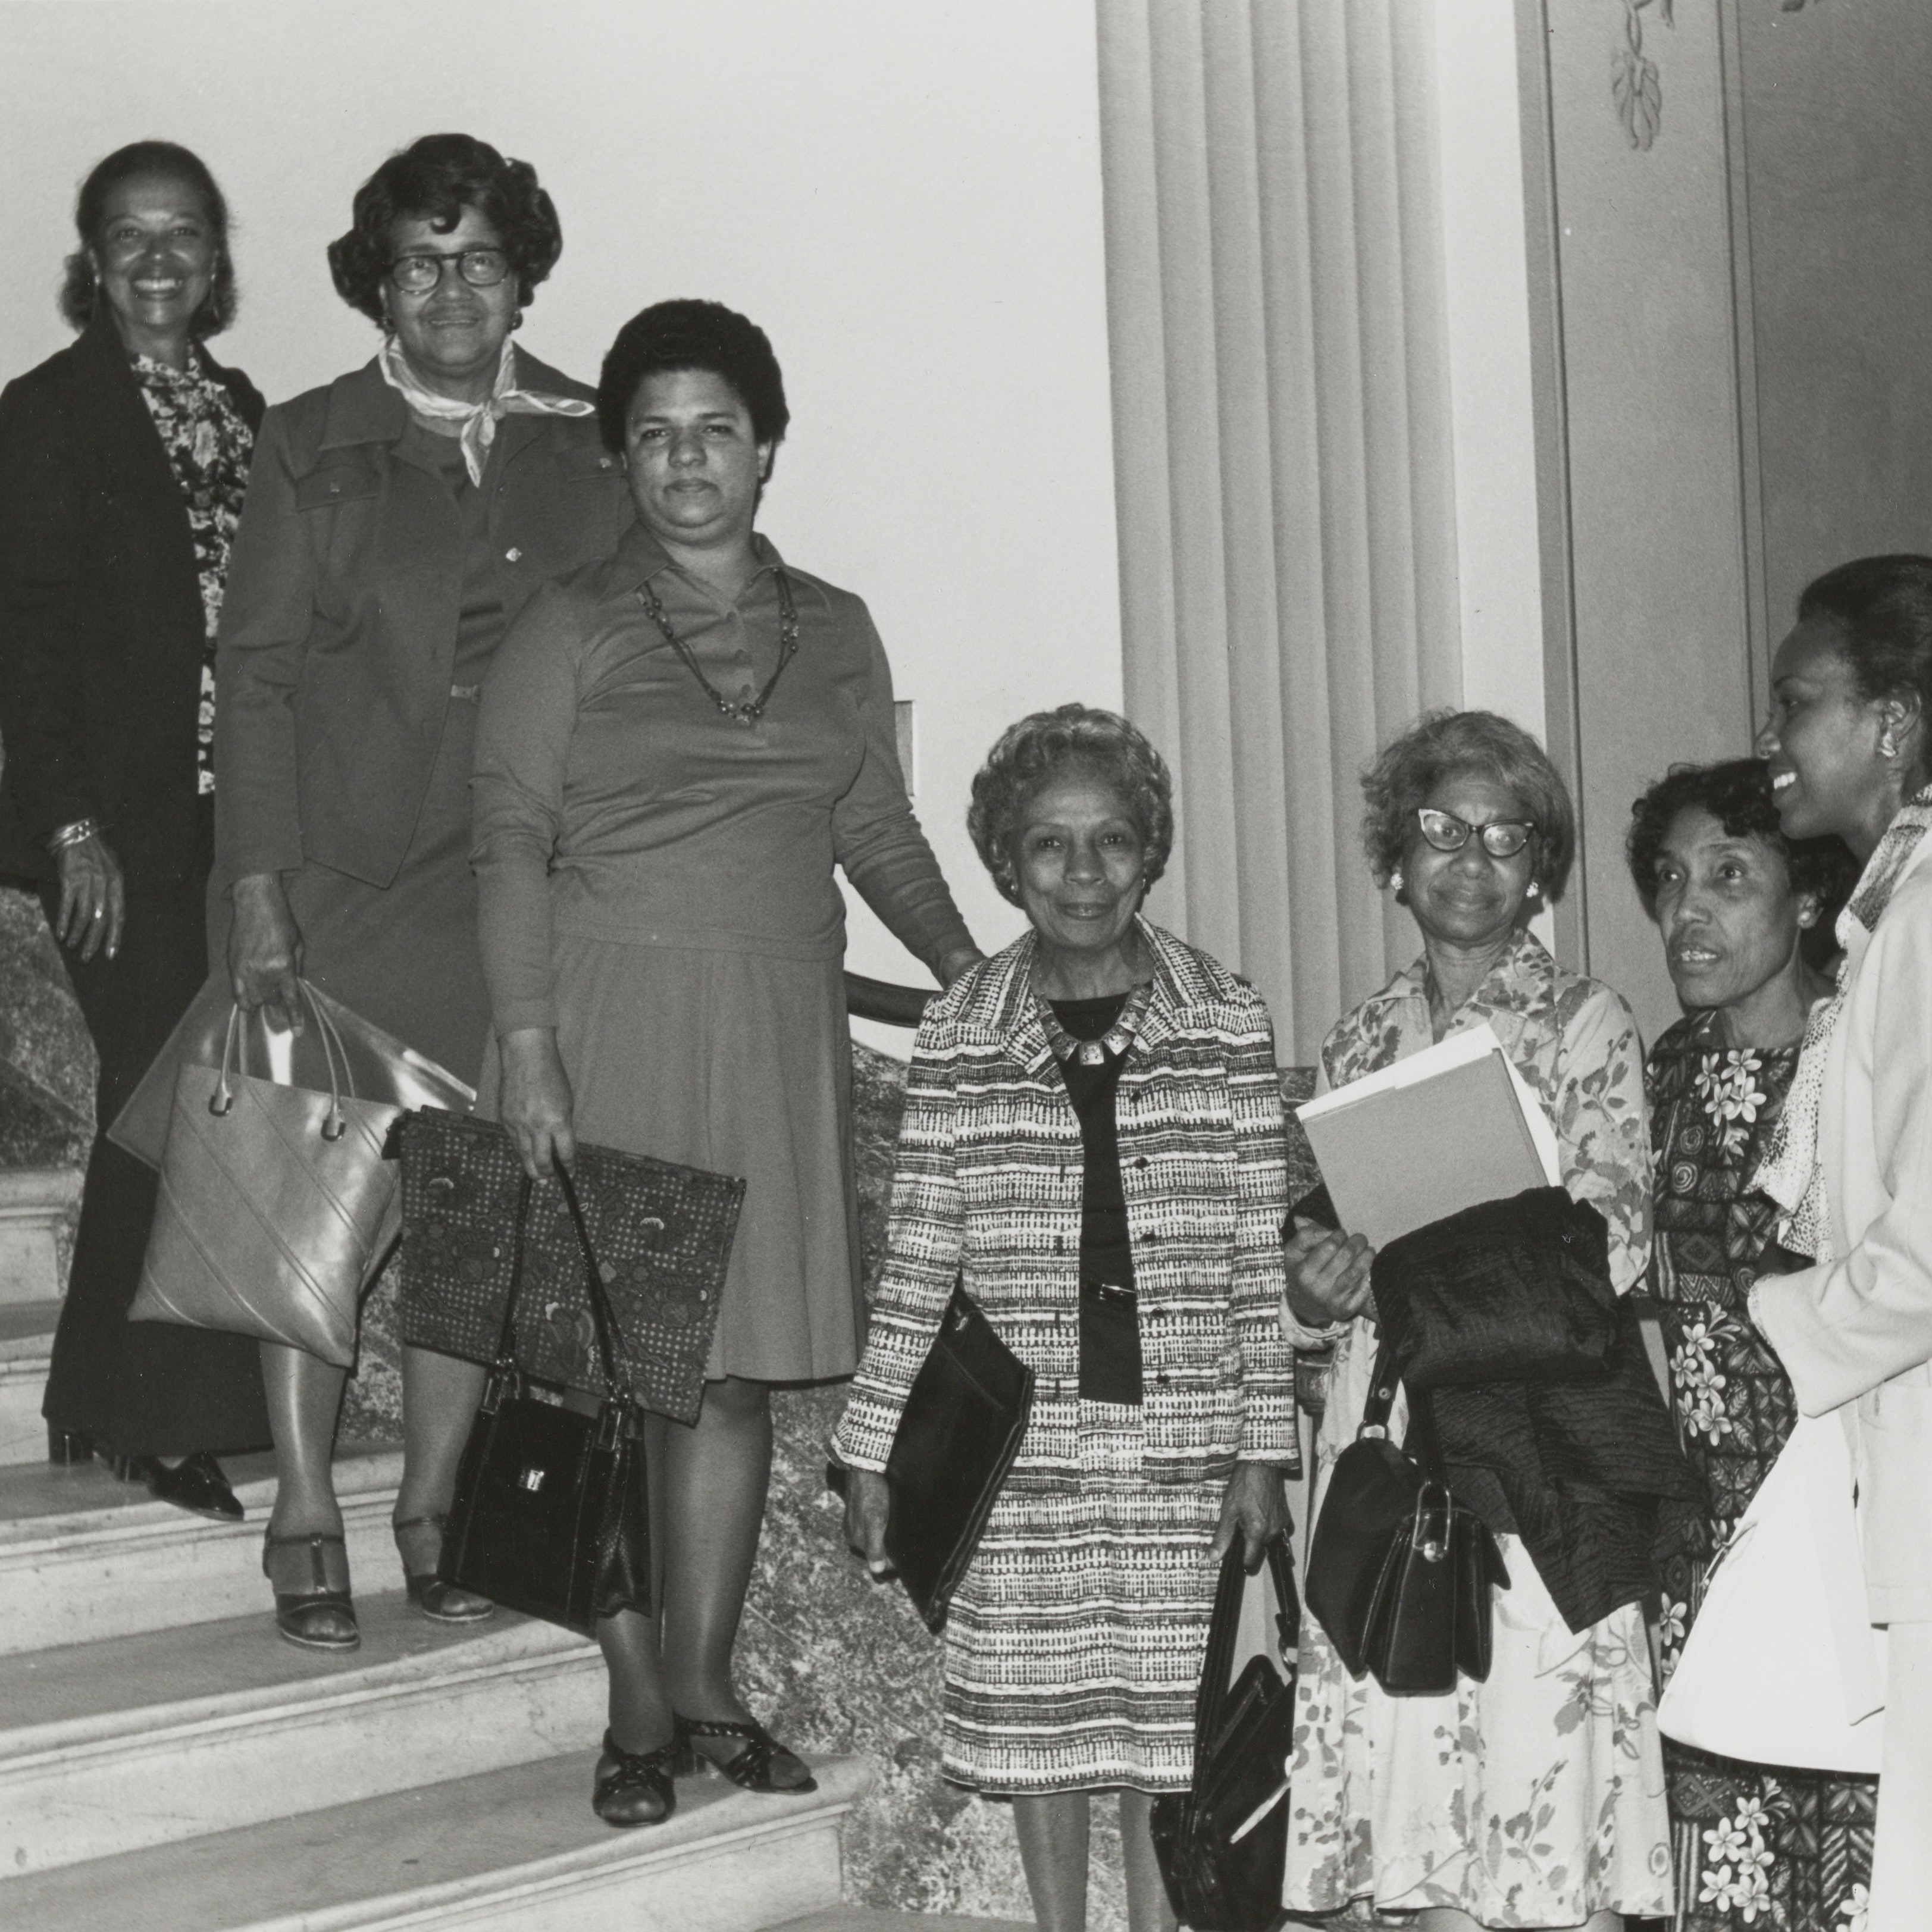 Group portrait of Black Women Oral History Project Advisory Board